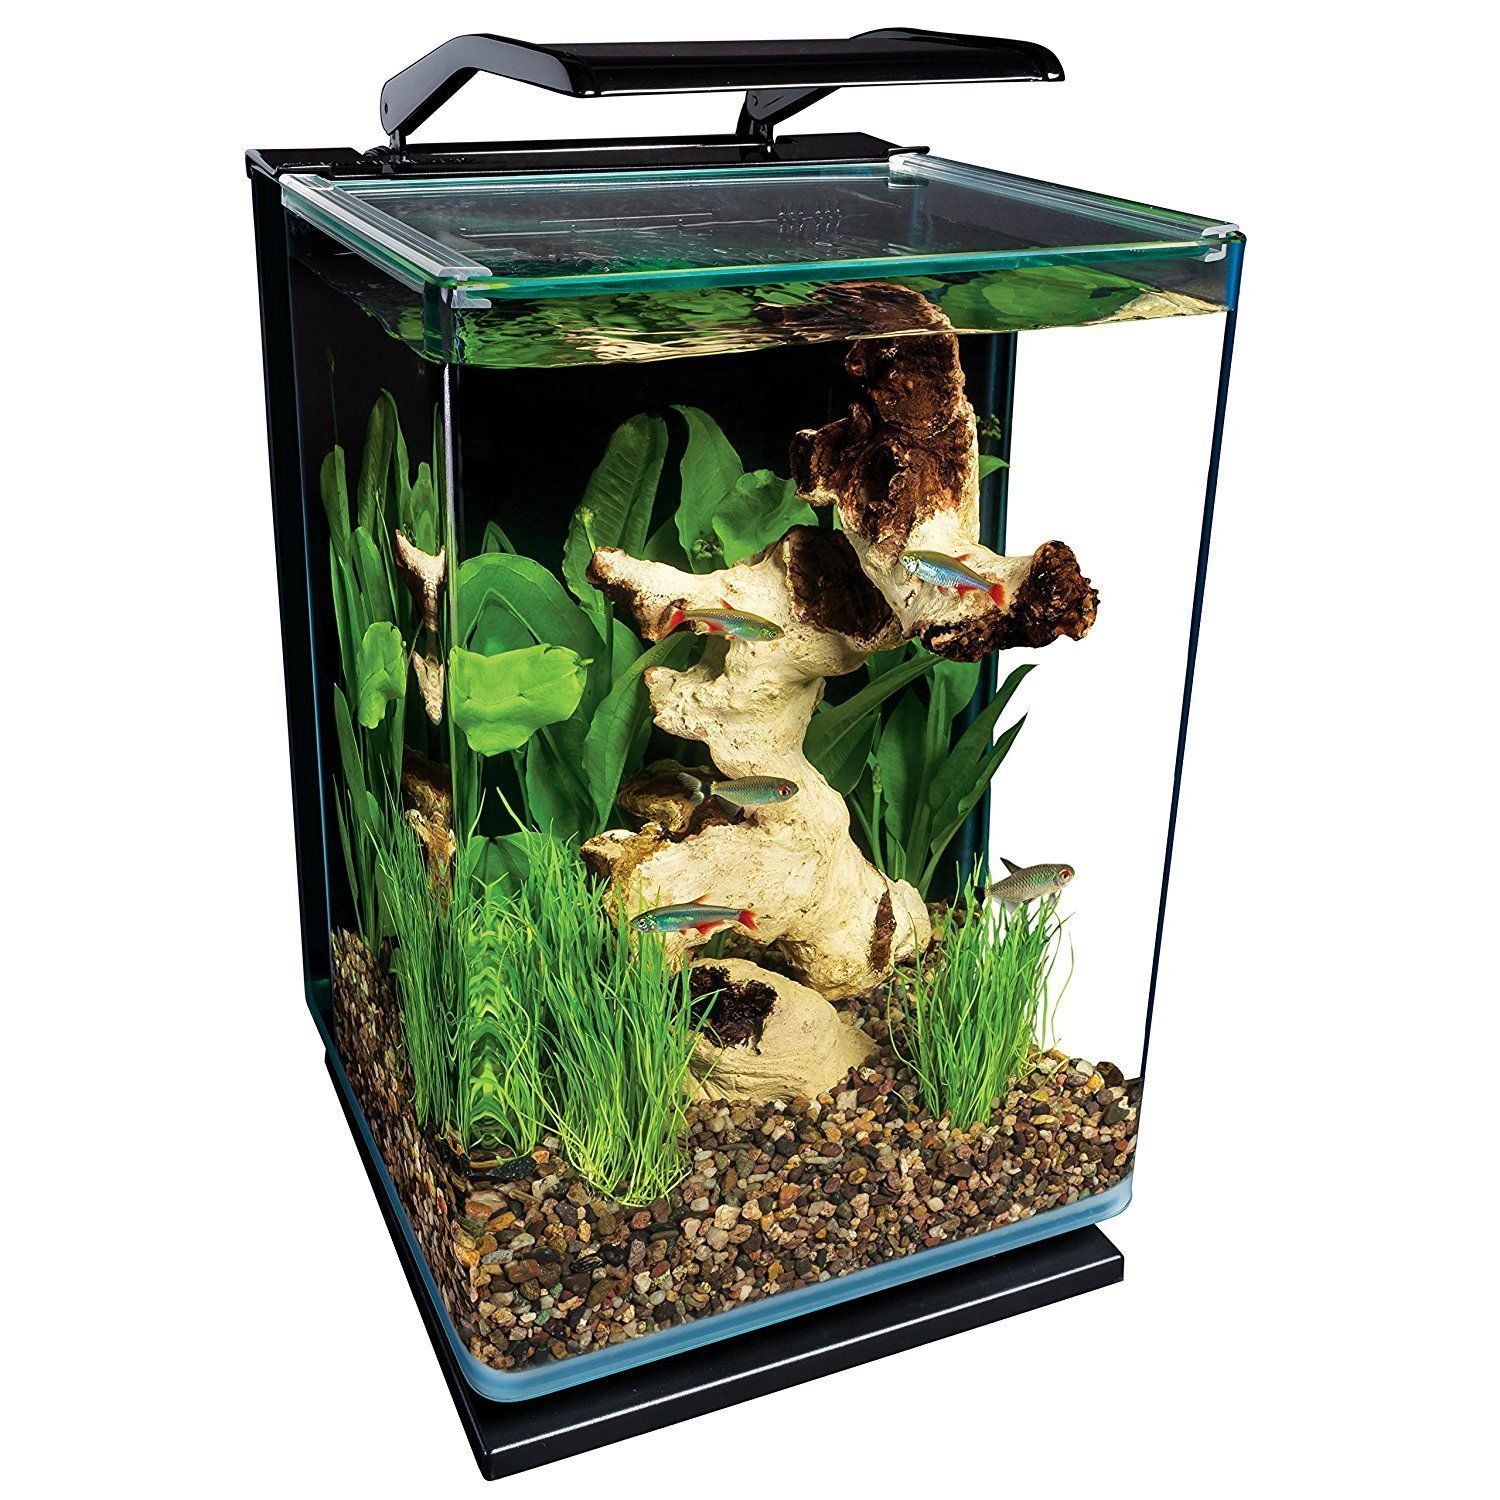 Aquarium fish tank complete system - Fish 5 Gallon Aquarium Tank